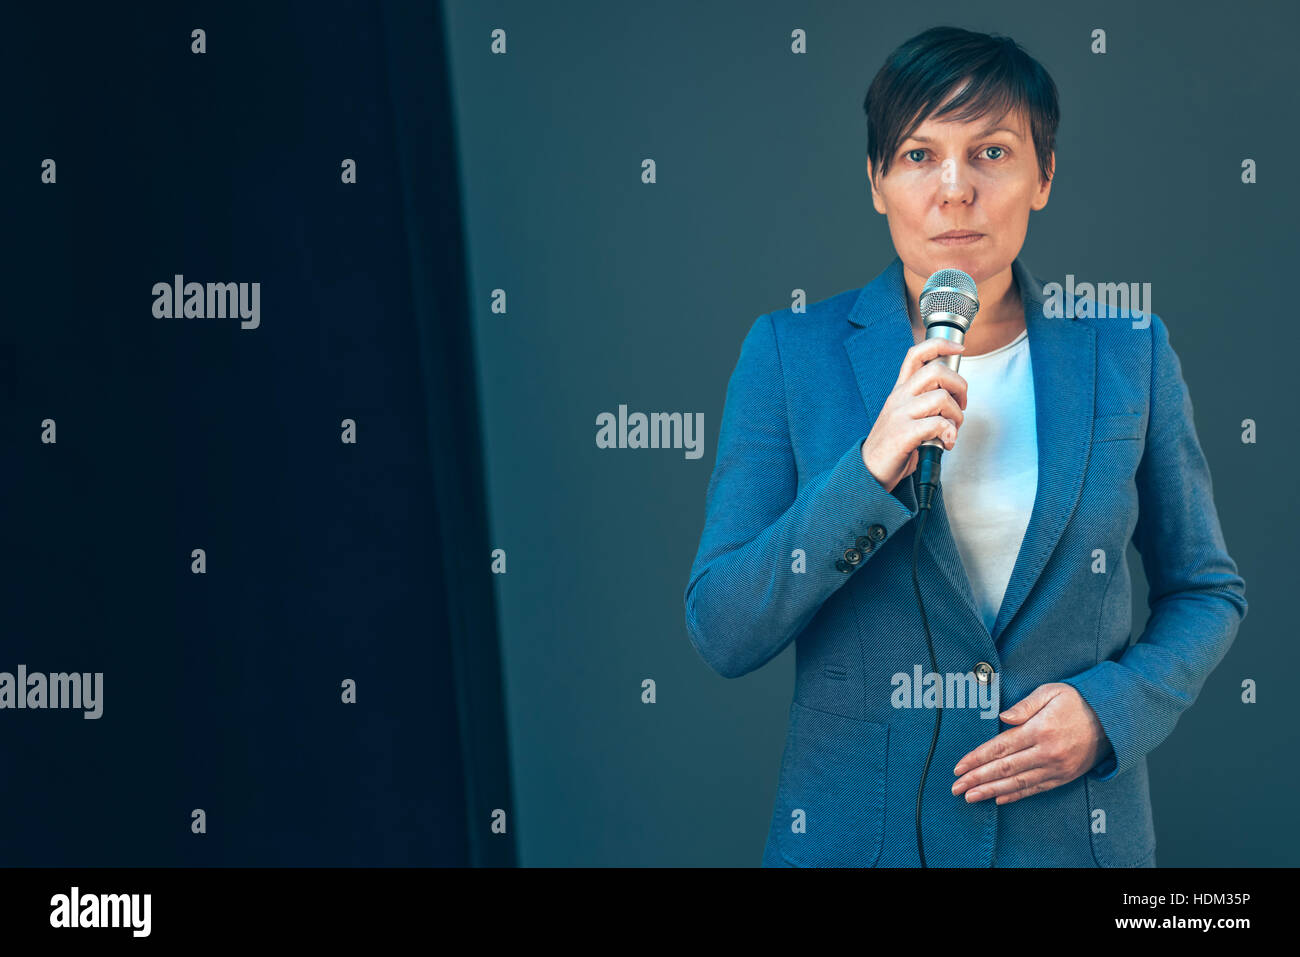 Elegant female television journalist doing business reportage, holding microphone in hands, breaking news concept - Stock Image